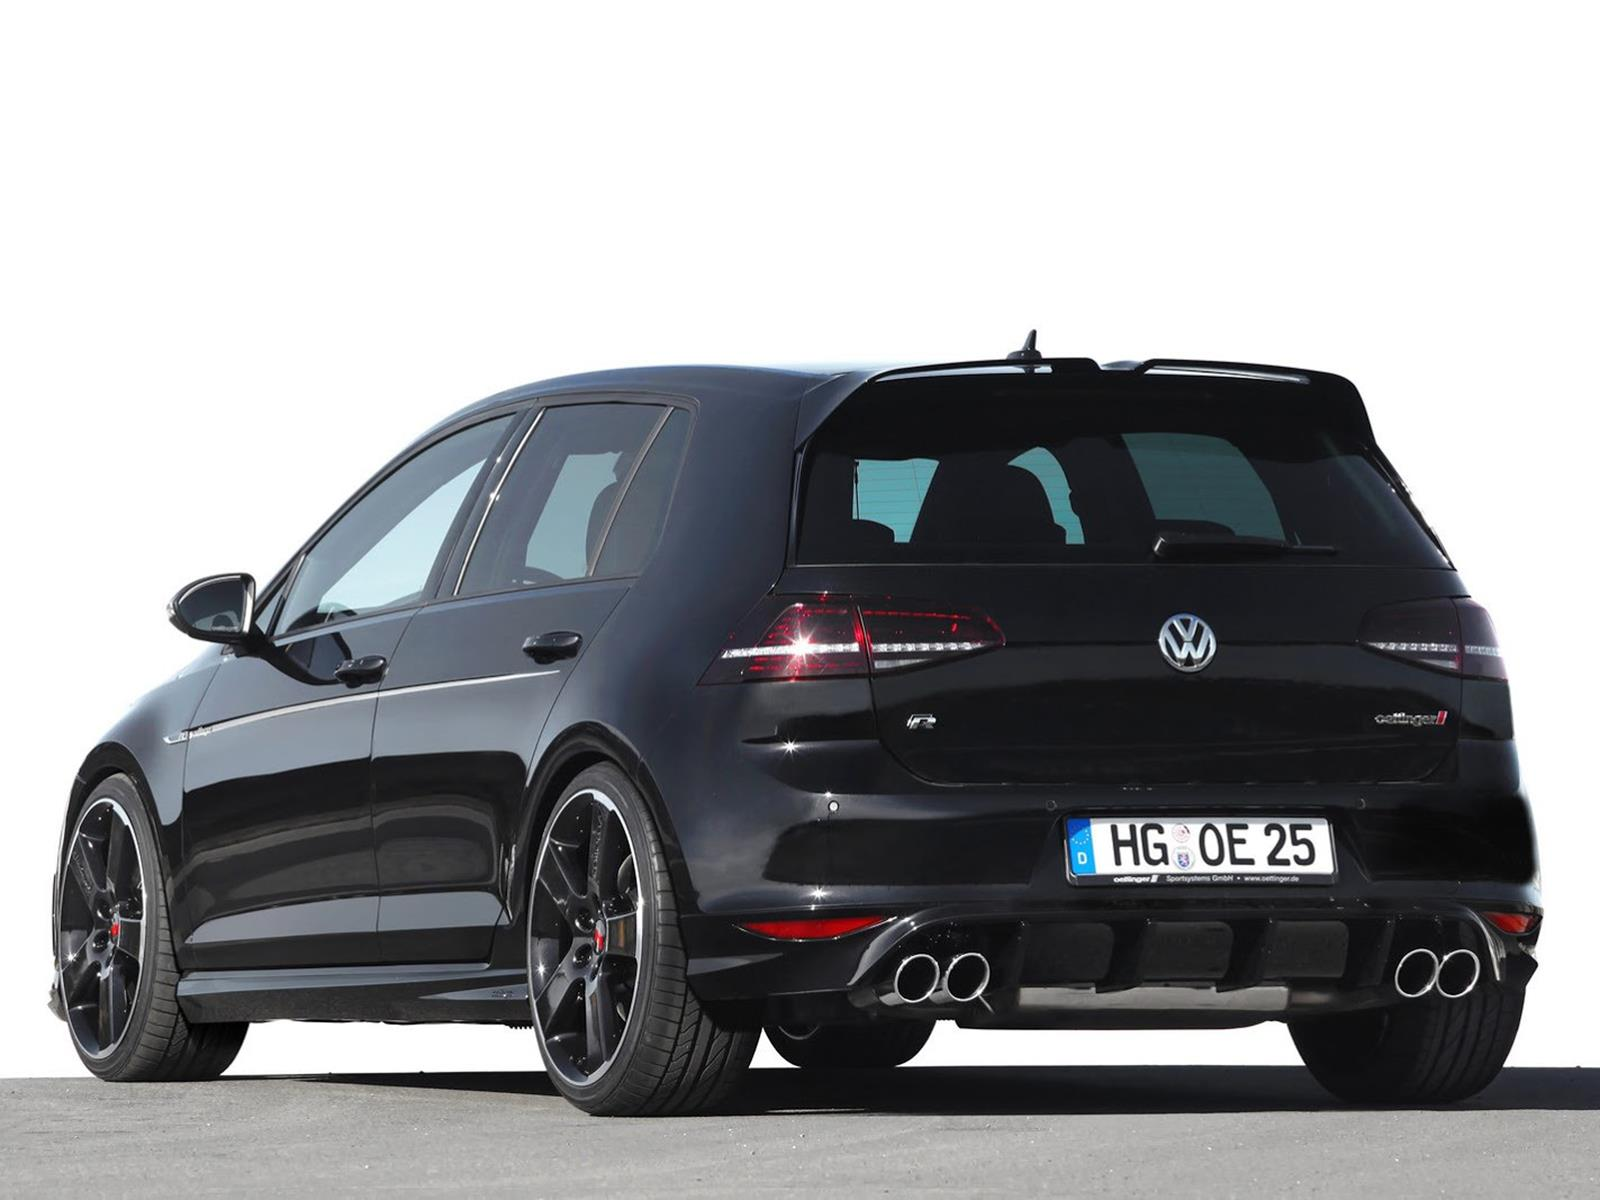 volkswagen golf r oettinger la m xima expresi n del hatchback compacto. Black Bedroom Furniture Sets. Home Design Ideas